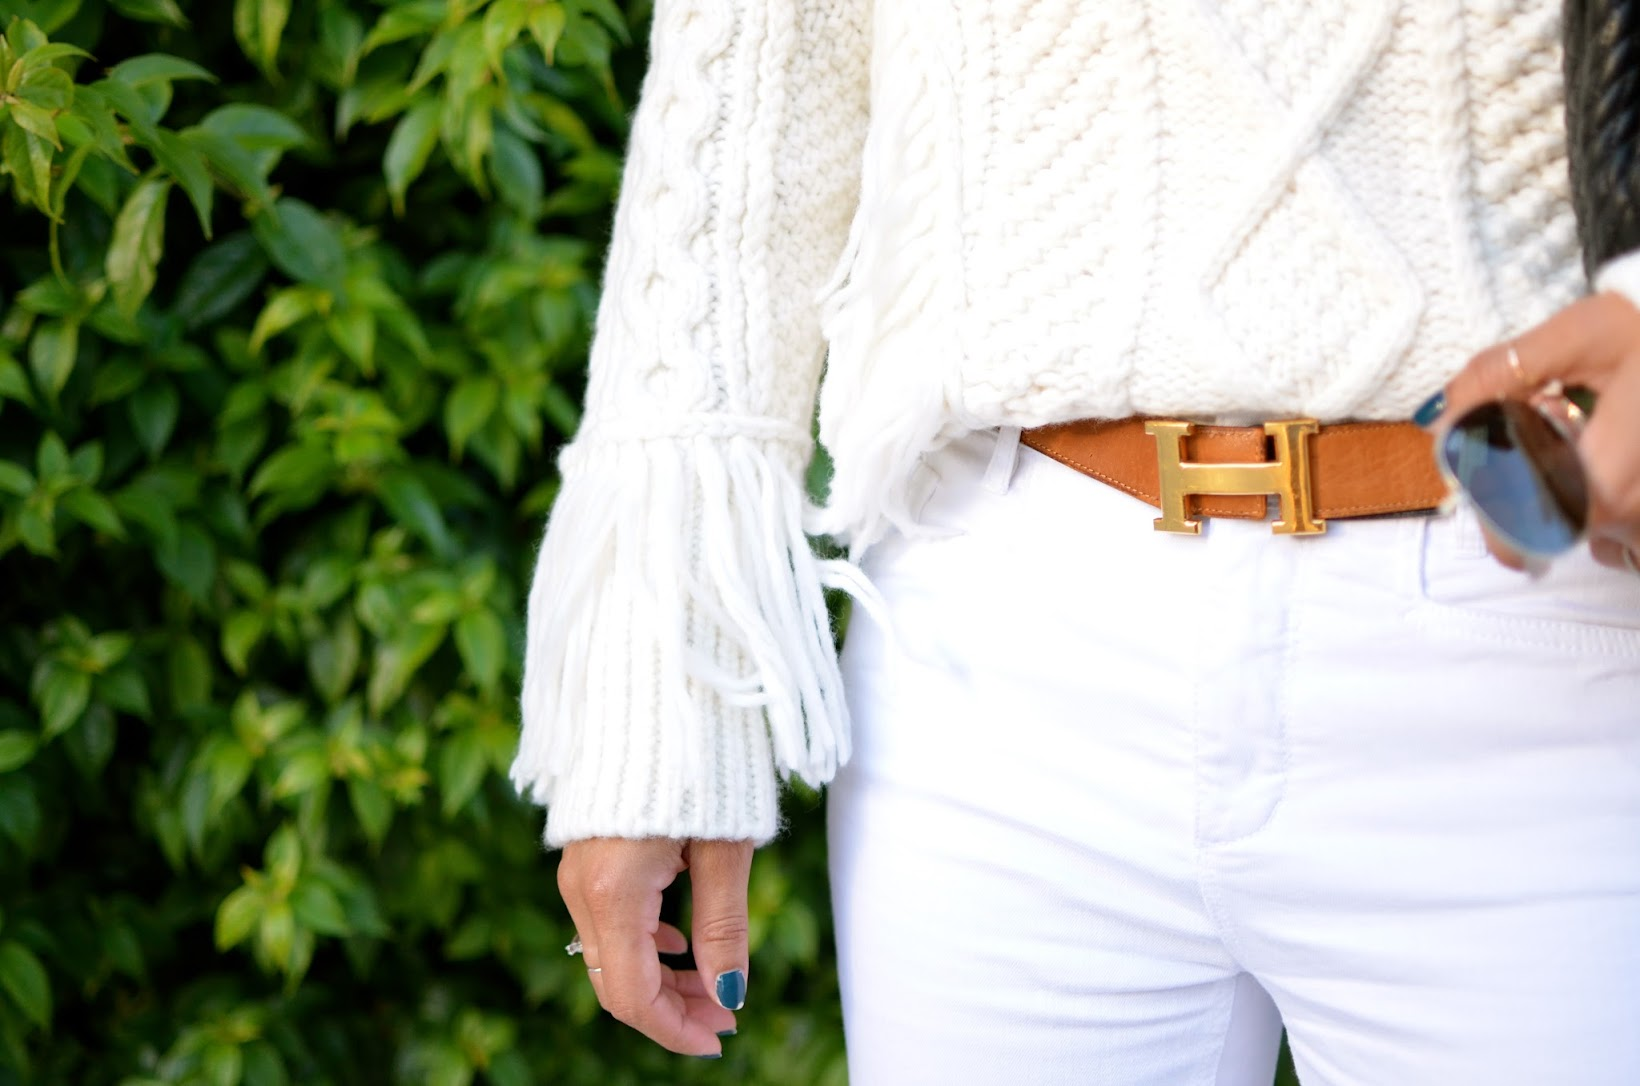 Coach Aran Funnelneck Turtleneck, Coach RTW 2016, Fringe turtleneck, Bally Swiss chain link bag, quilted chain bag, curly to straight hair, all white for fall, white for fall, Ray Ban aviator, J.Jill cropped denim, Coach, Coach Tamara pumps, Coach, chic street style, OOTD